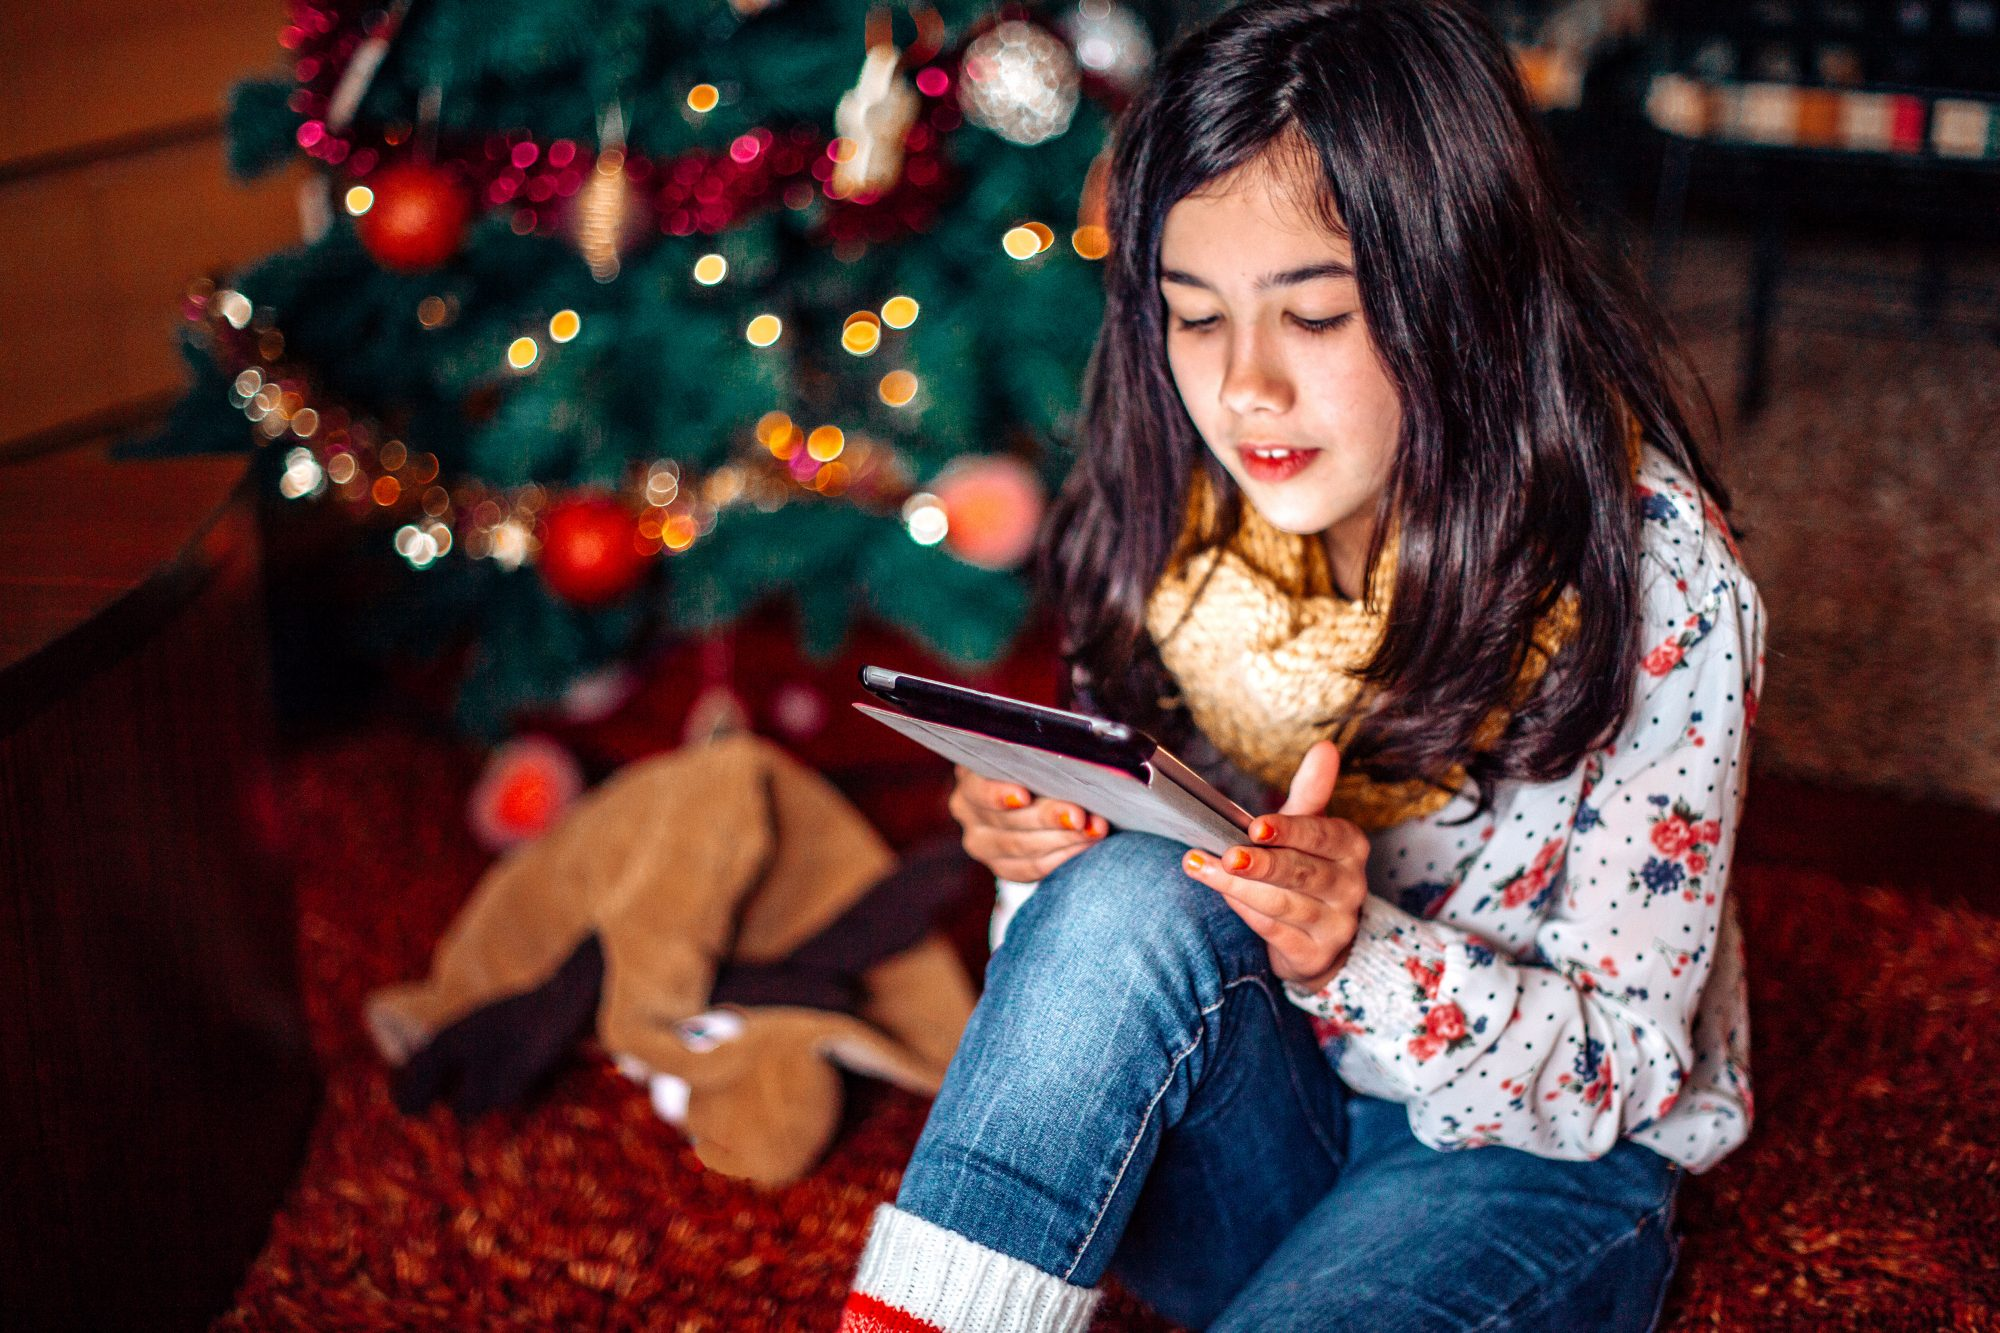 A photo of a young girl on her iPad during Christmas time.